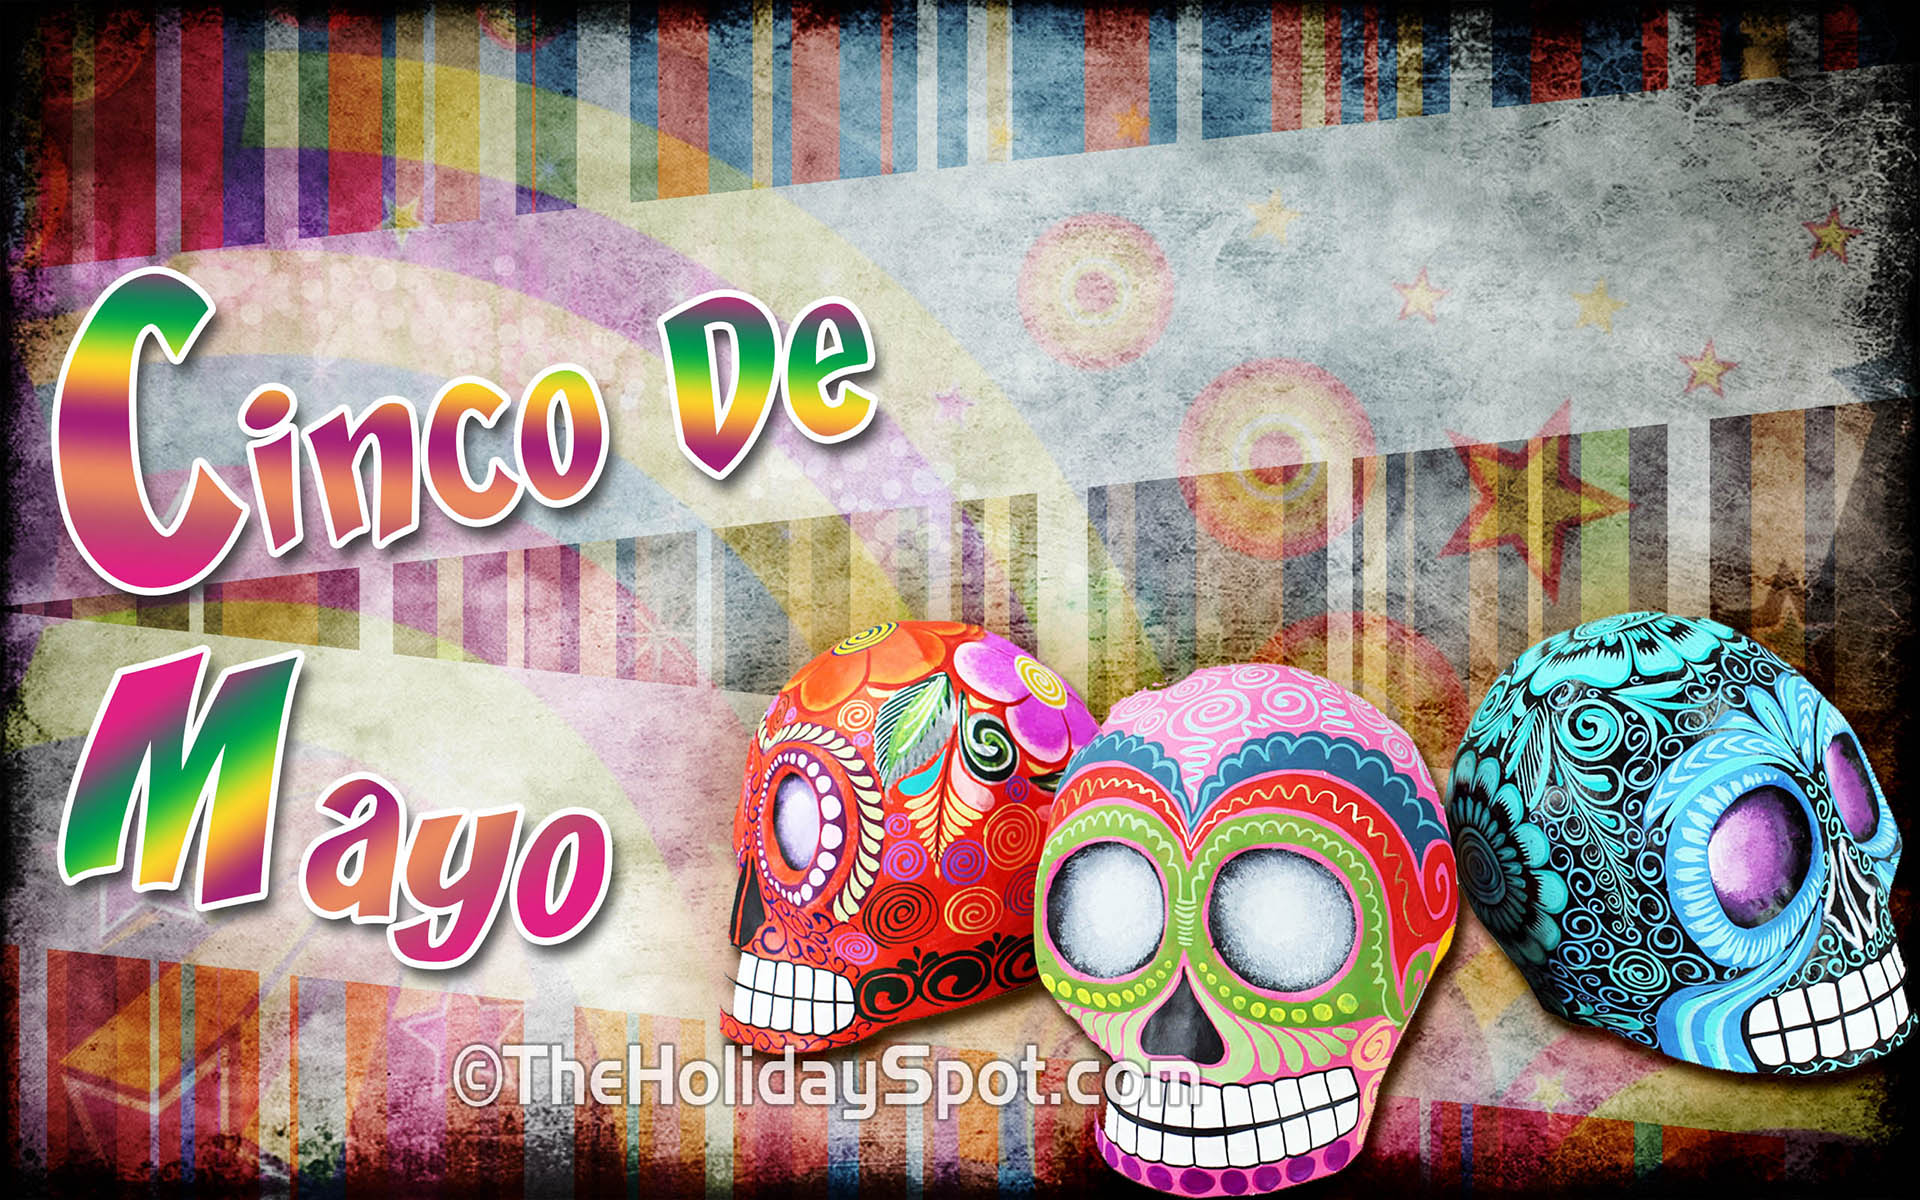 Colorful High Defination Wallpaper Showing Colored Mexican Skulls